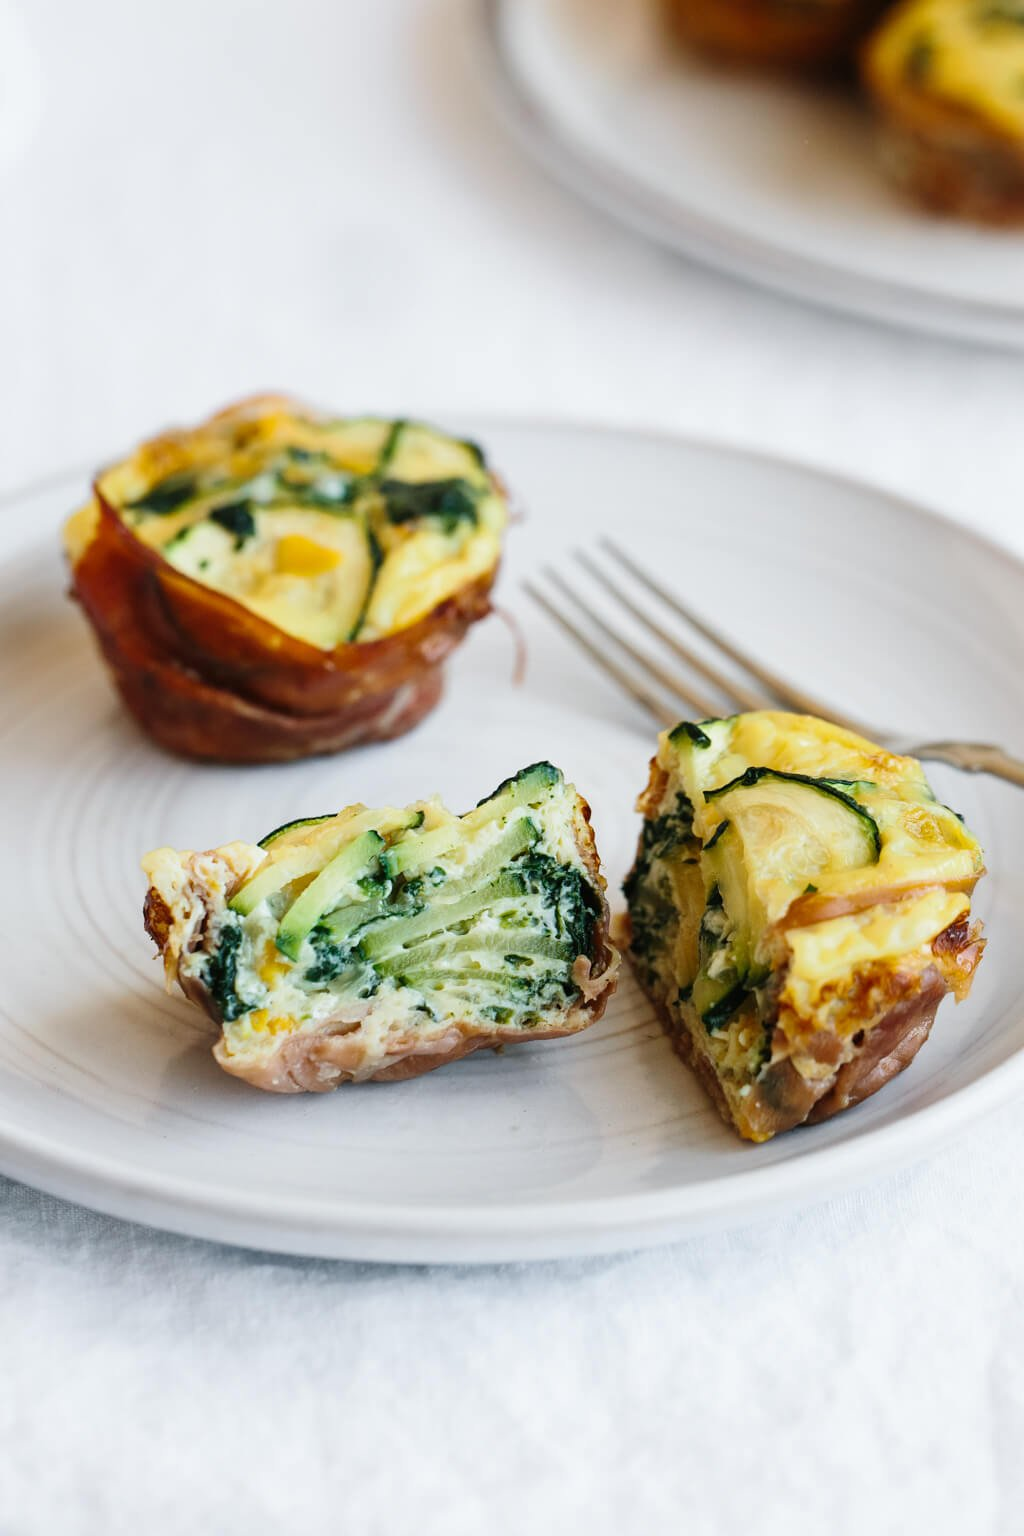 An egg muffin sliced in half to show the zucchini inside.